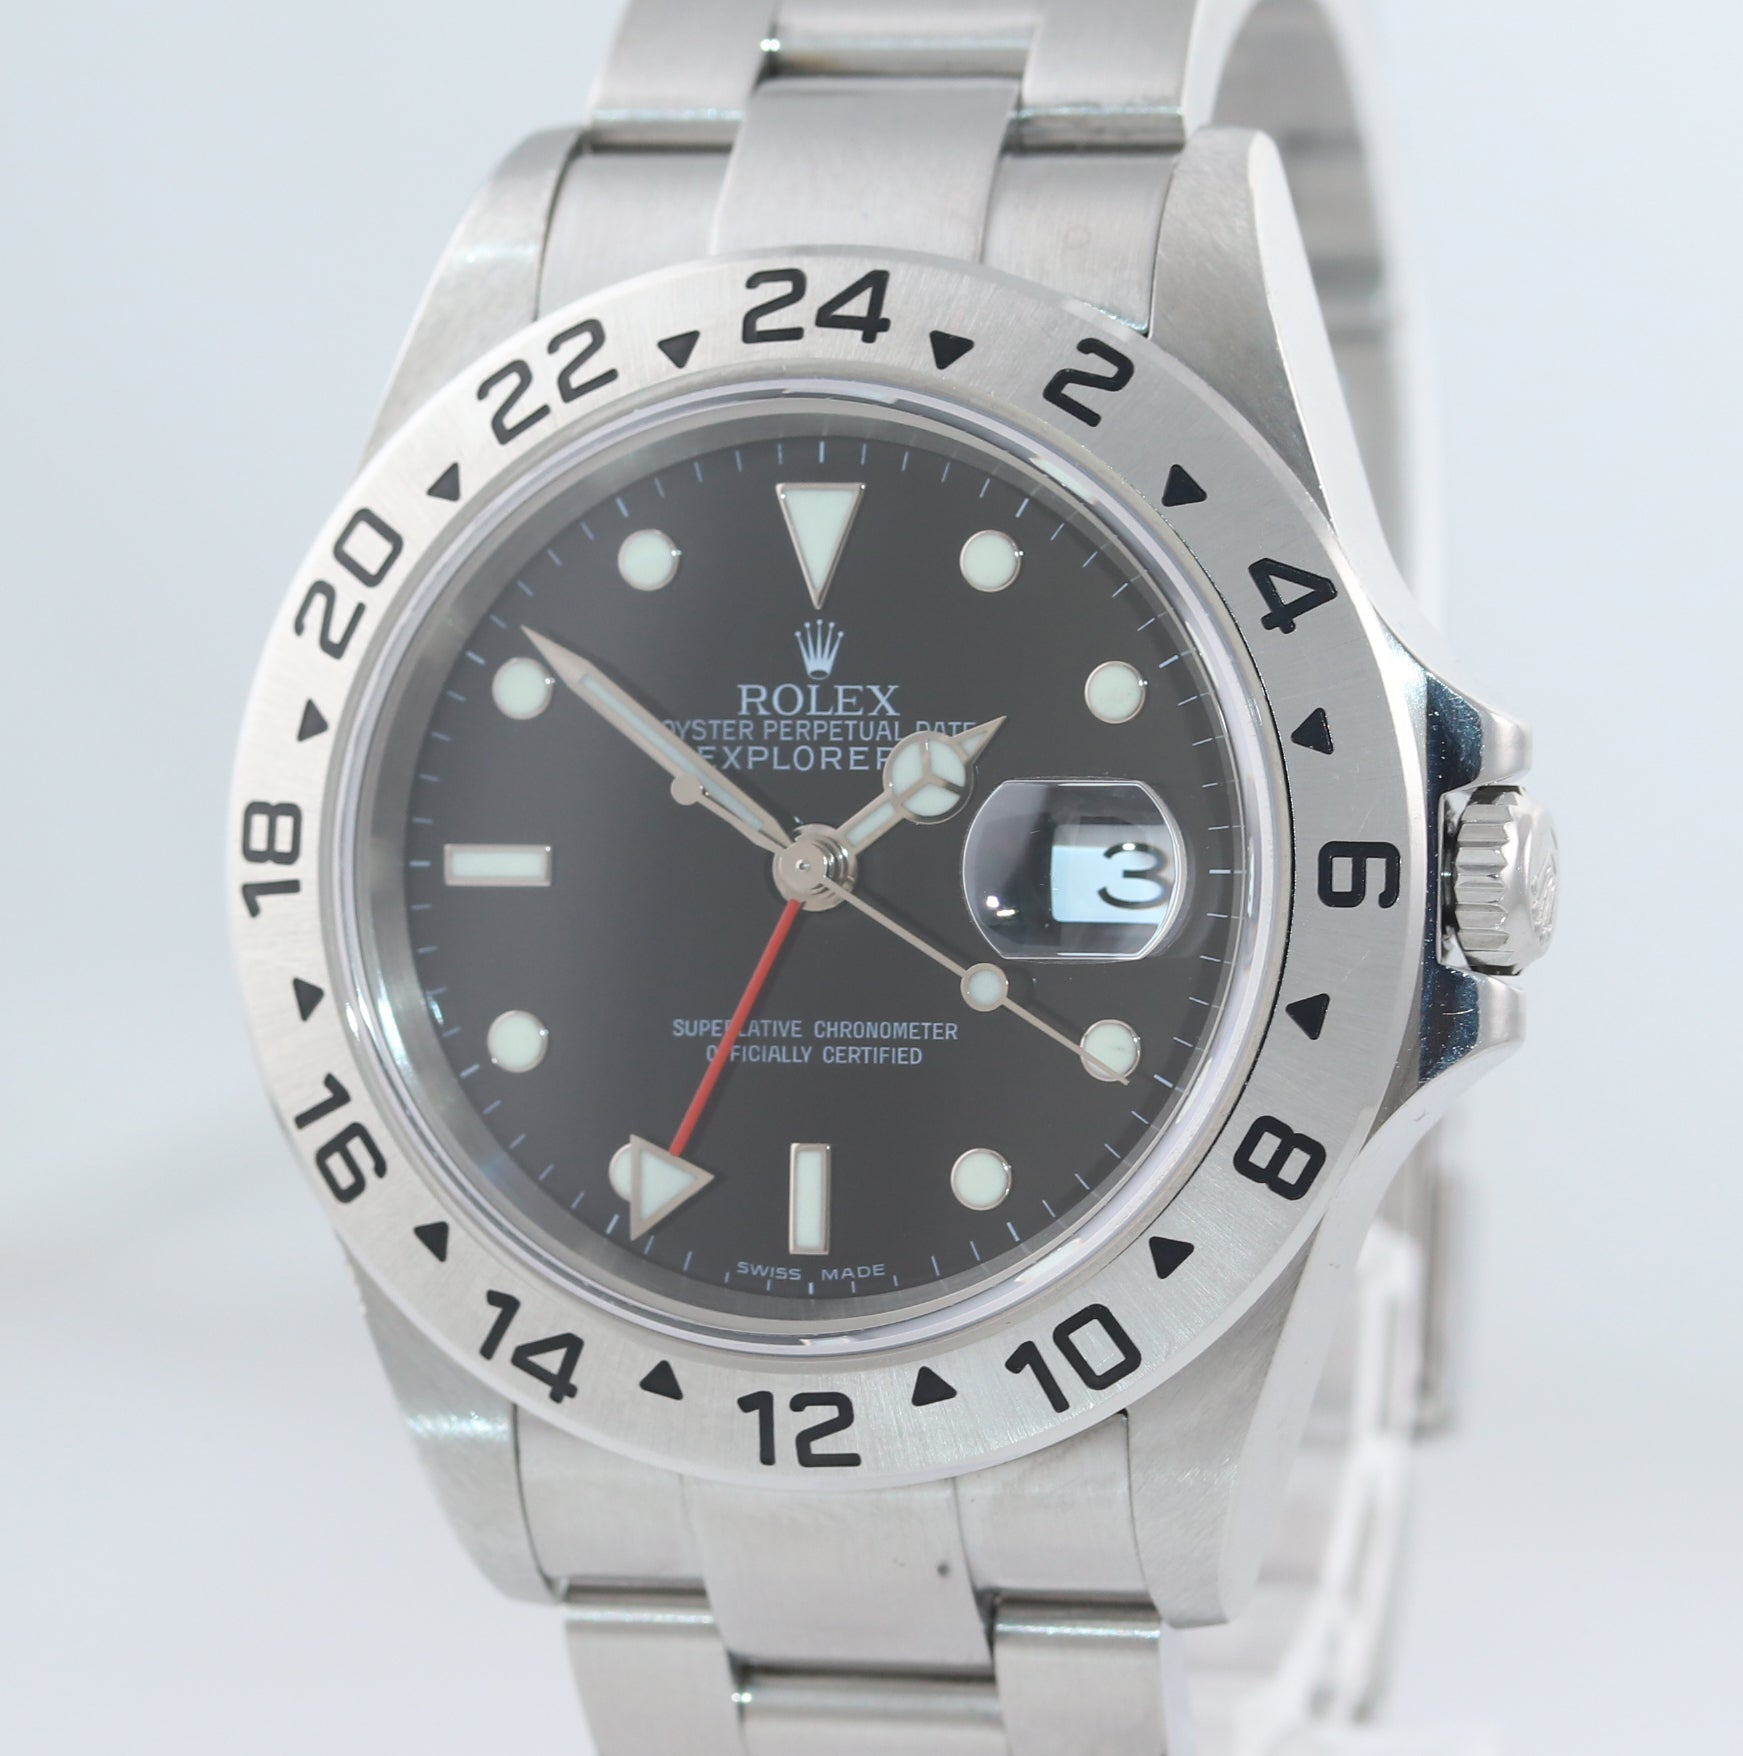 MINT NO HOLES Rolex Explorer II 16570 Stainless Steel Black Date GMT 40mm Watch